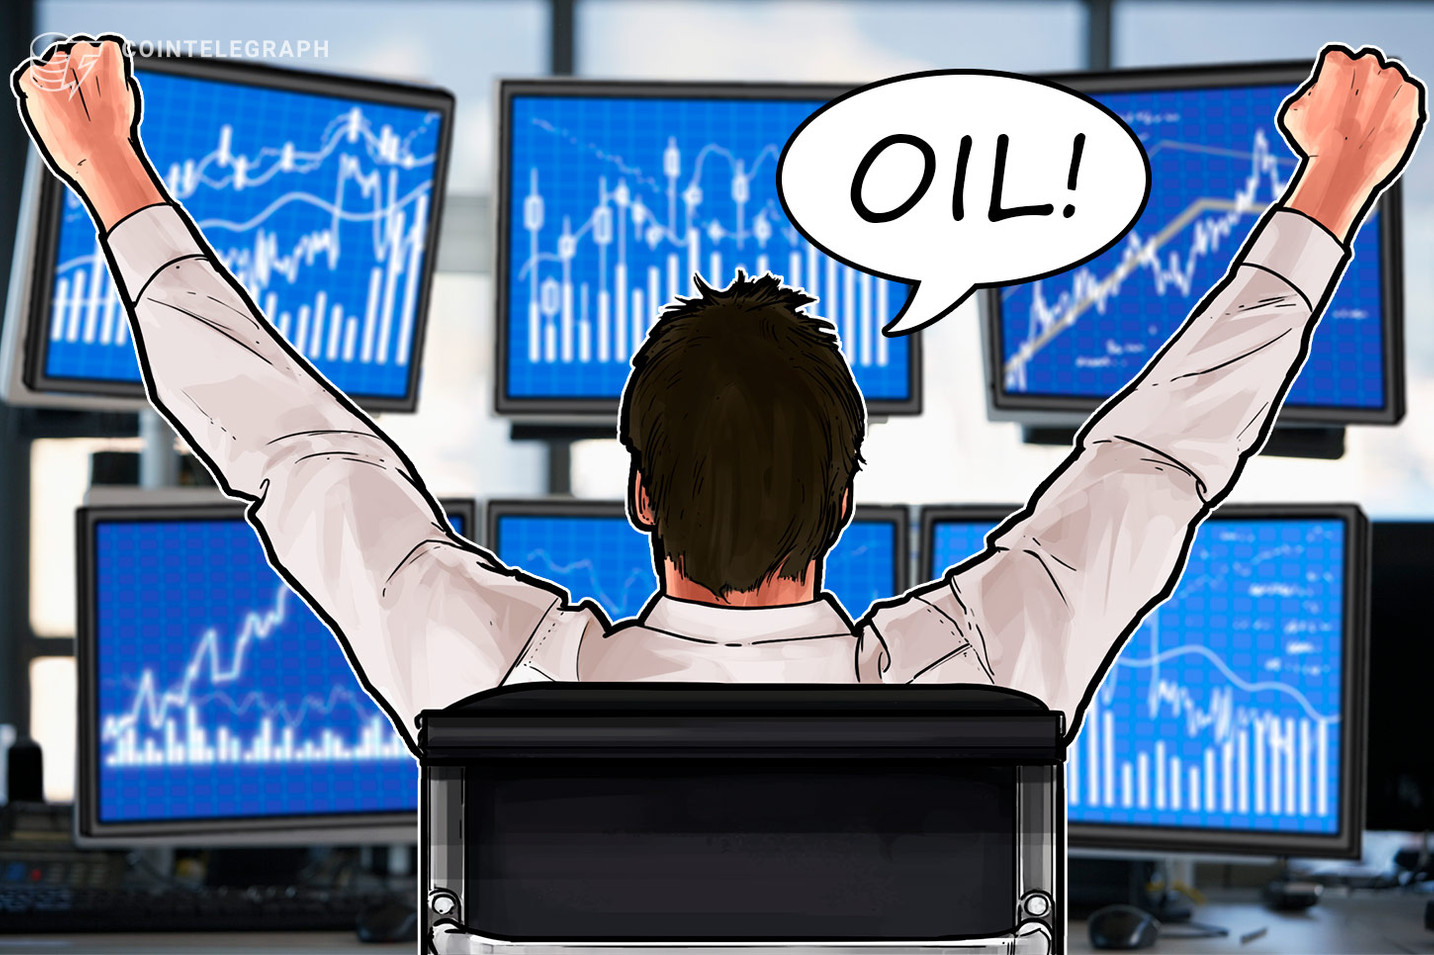 Traders Buy Oil Futures With Crypto Amid Record Volatility